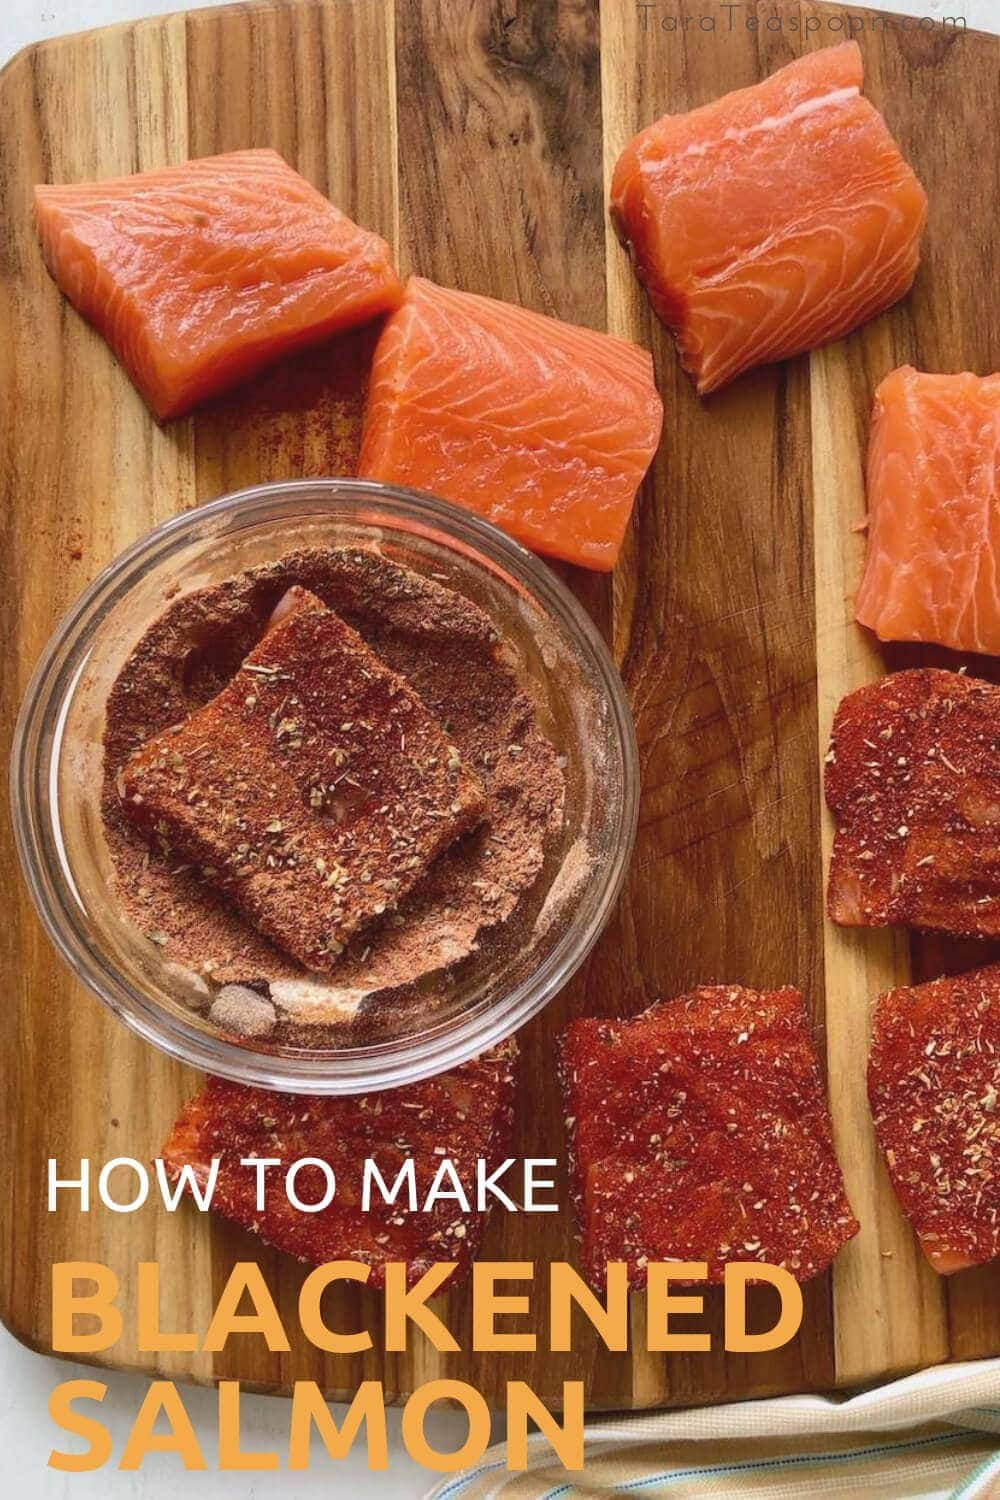 how to make blackened salmon with spice on board